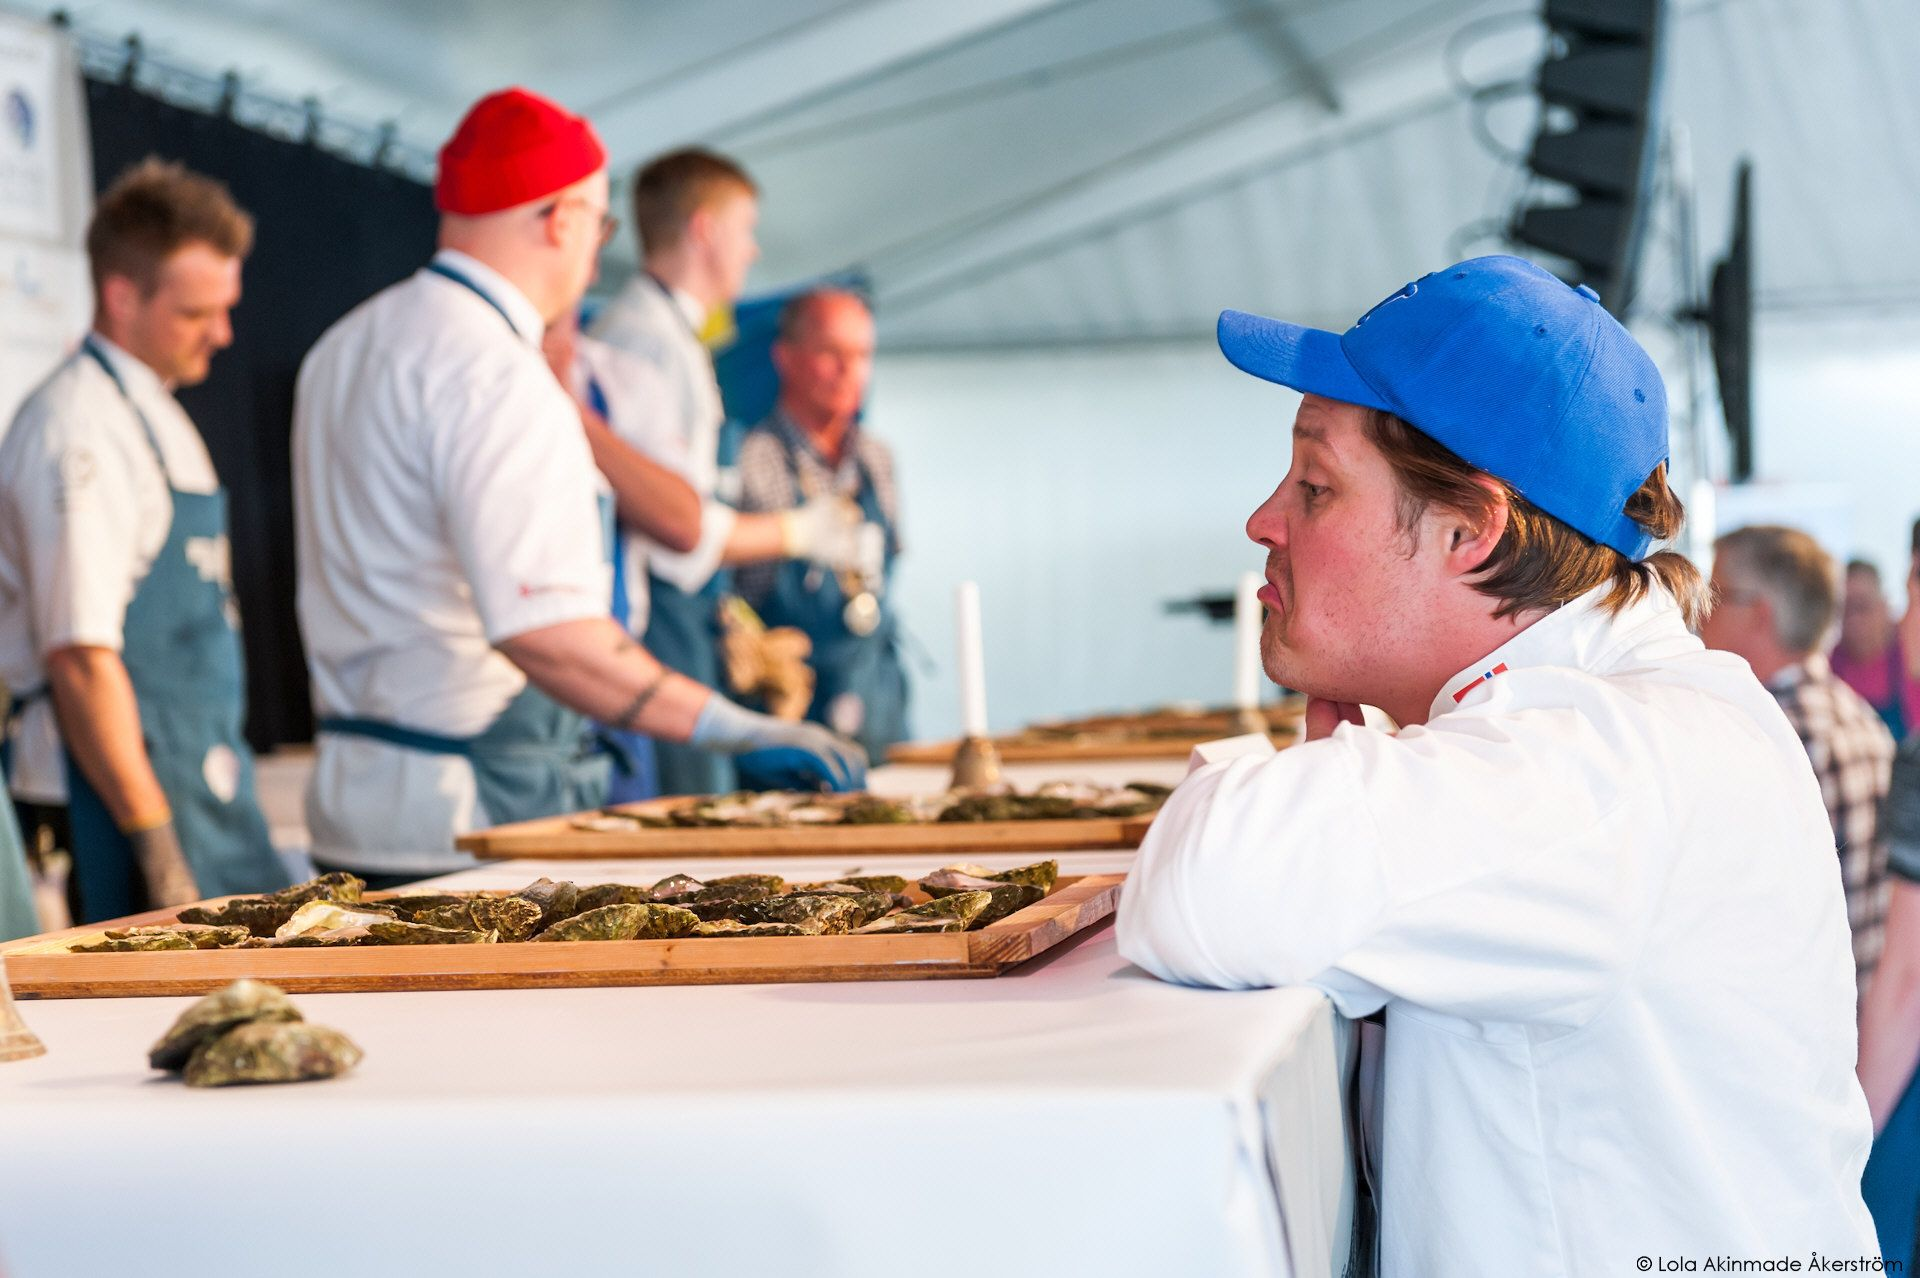 Nordic Oyster Shucking Championships in Grebbestad, West Sweden